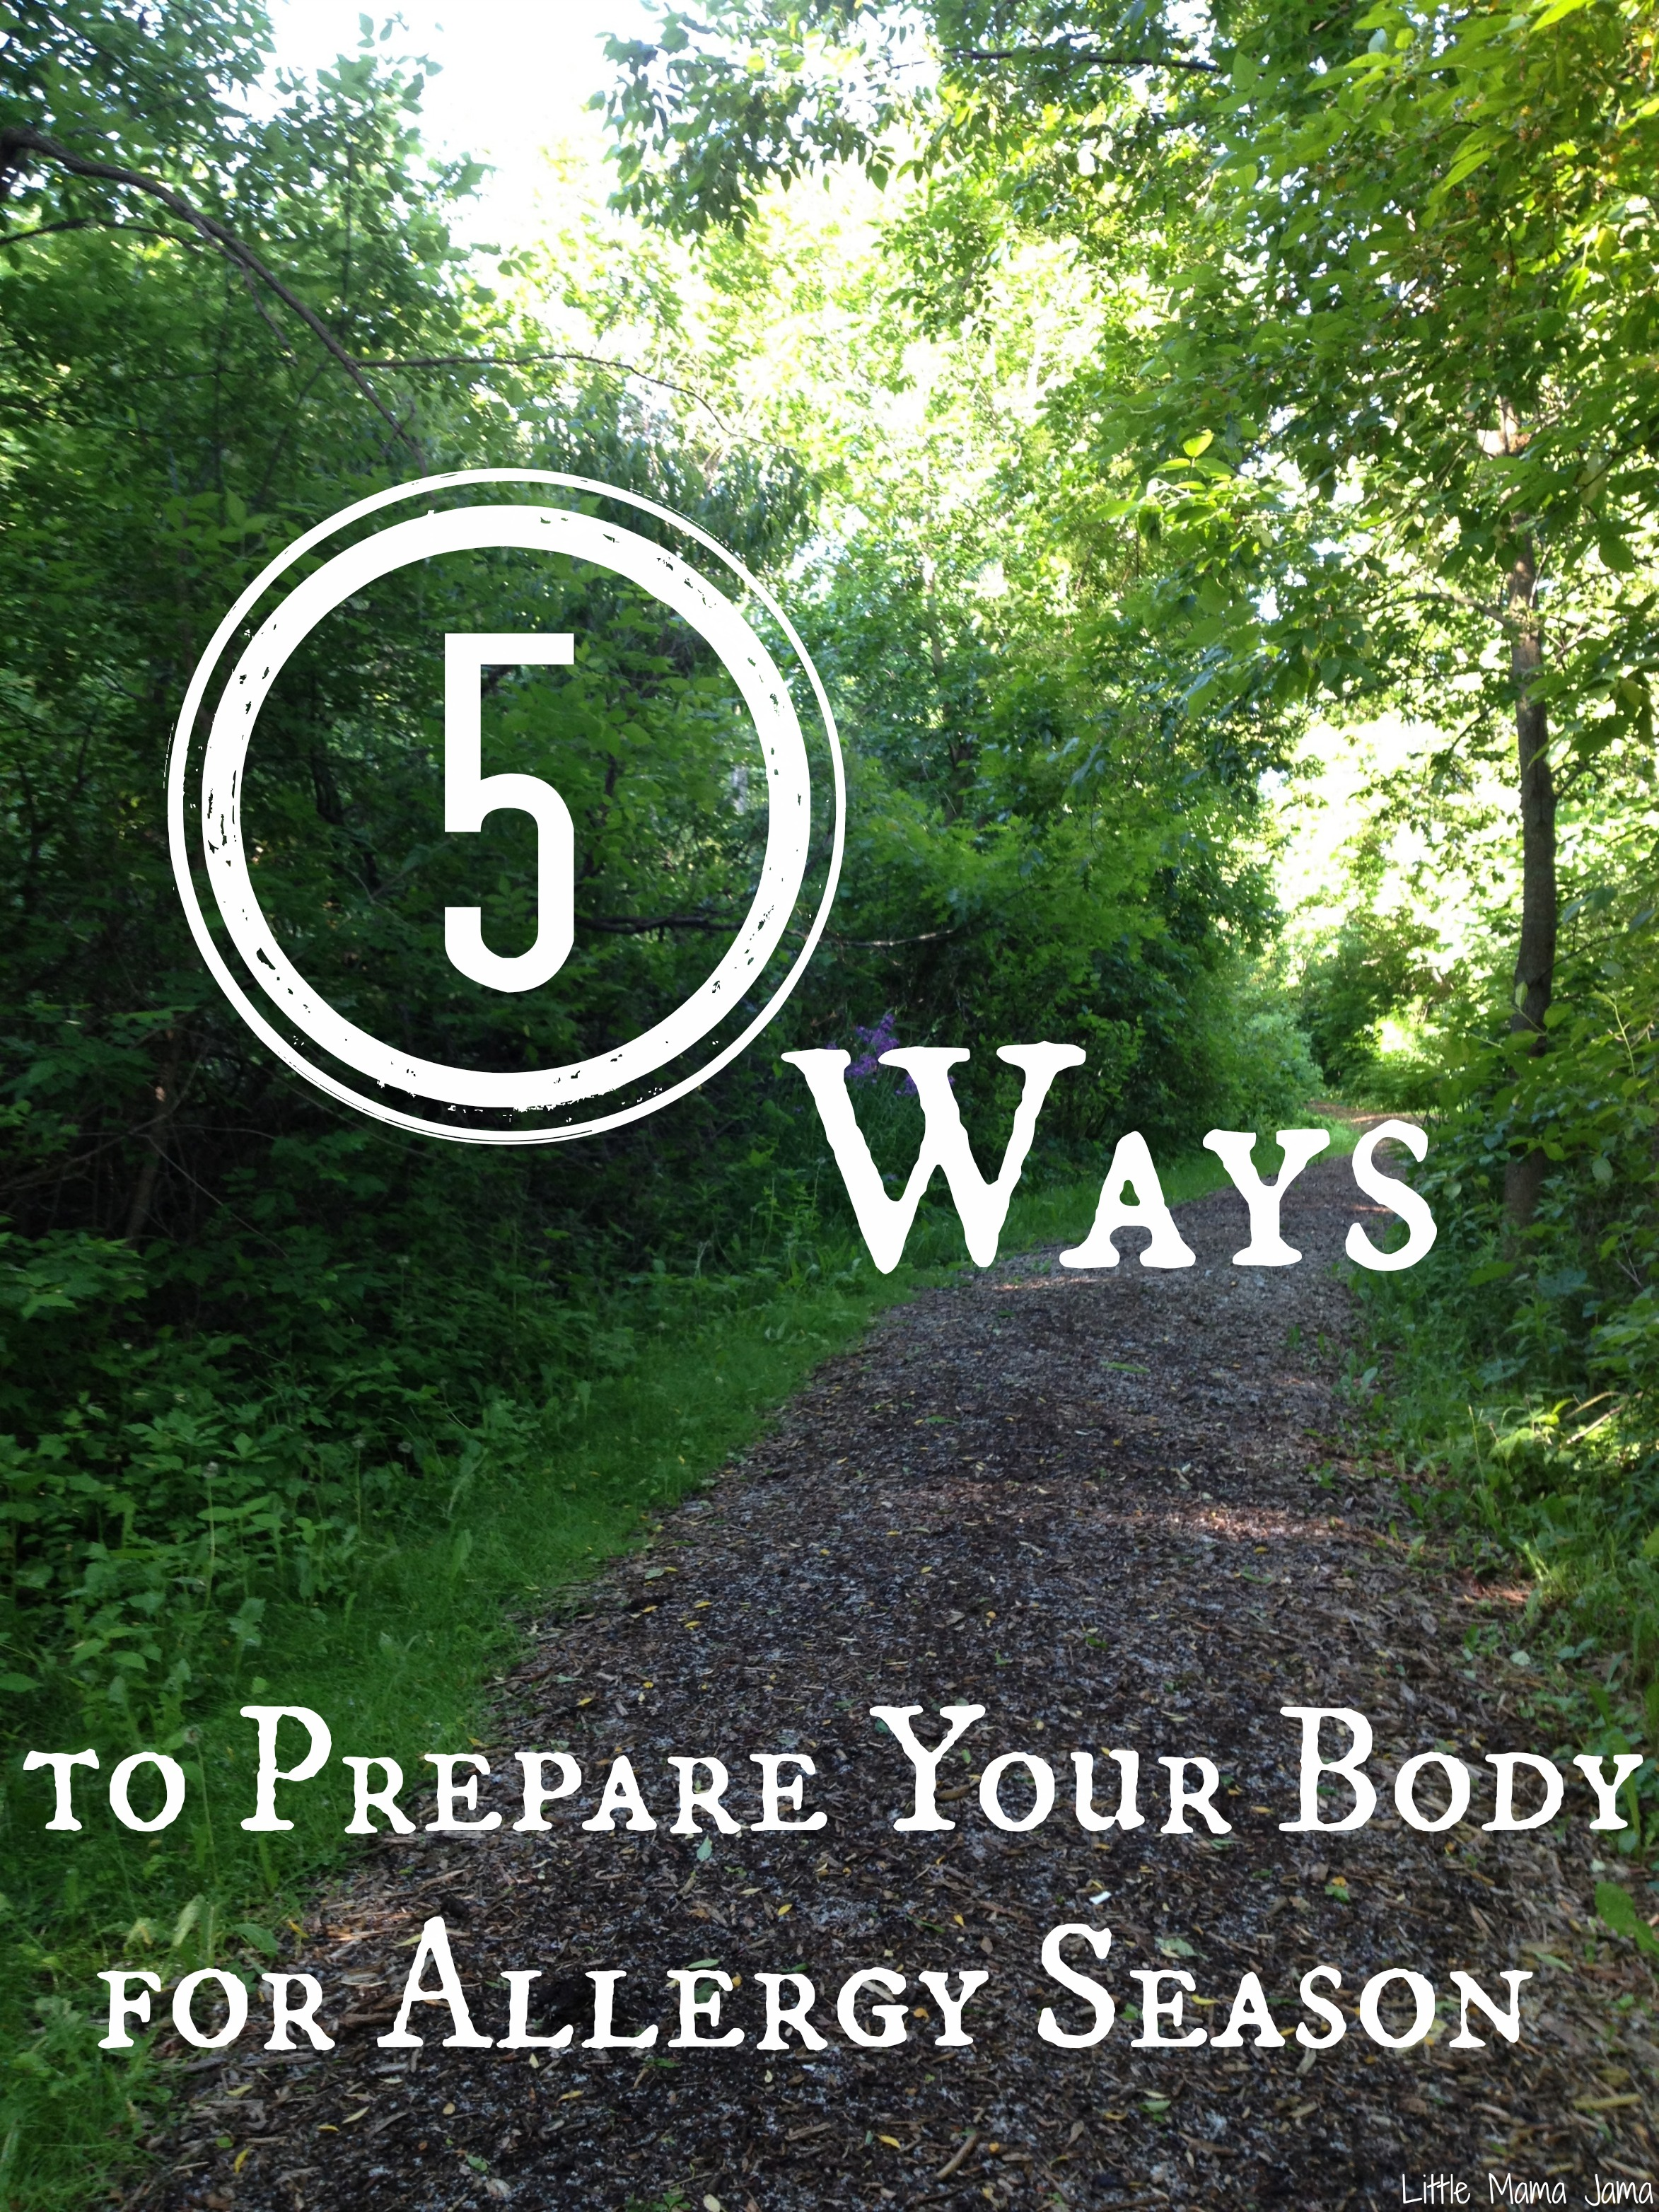 5 Ways to Prepare Your Body for Allergy Season #NaturalProbiotic #shop #cbias